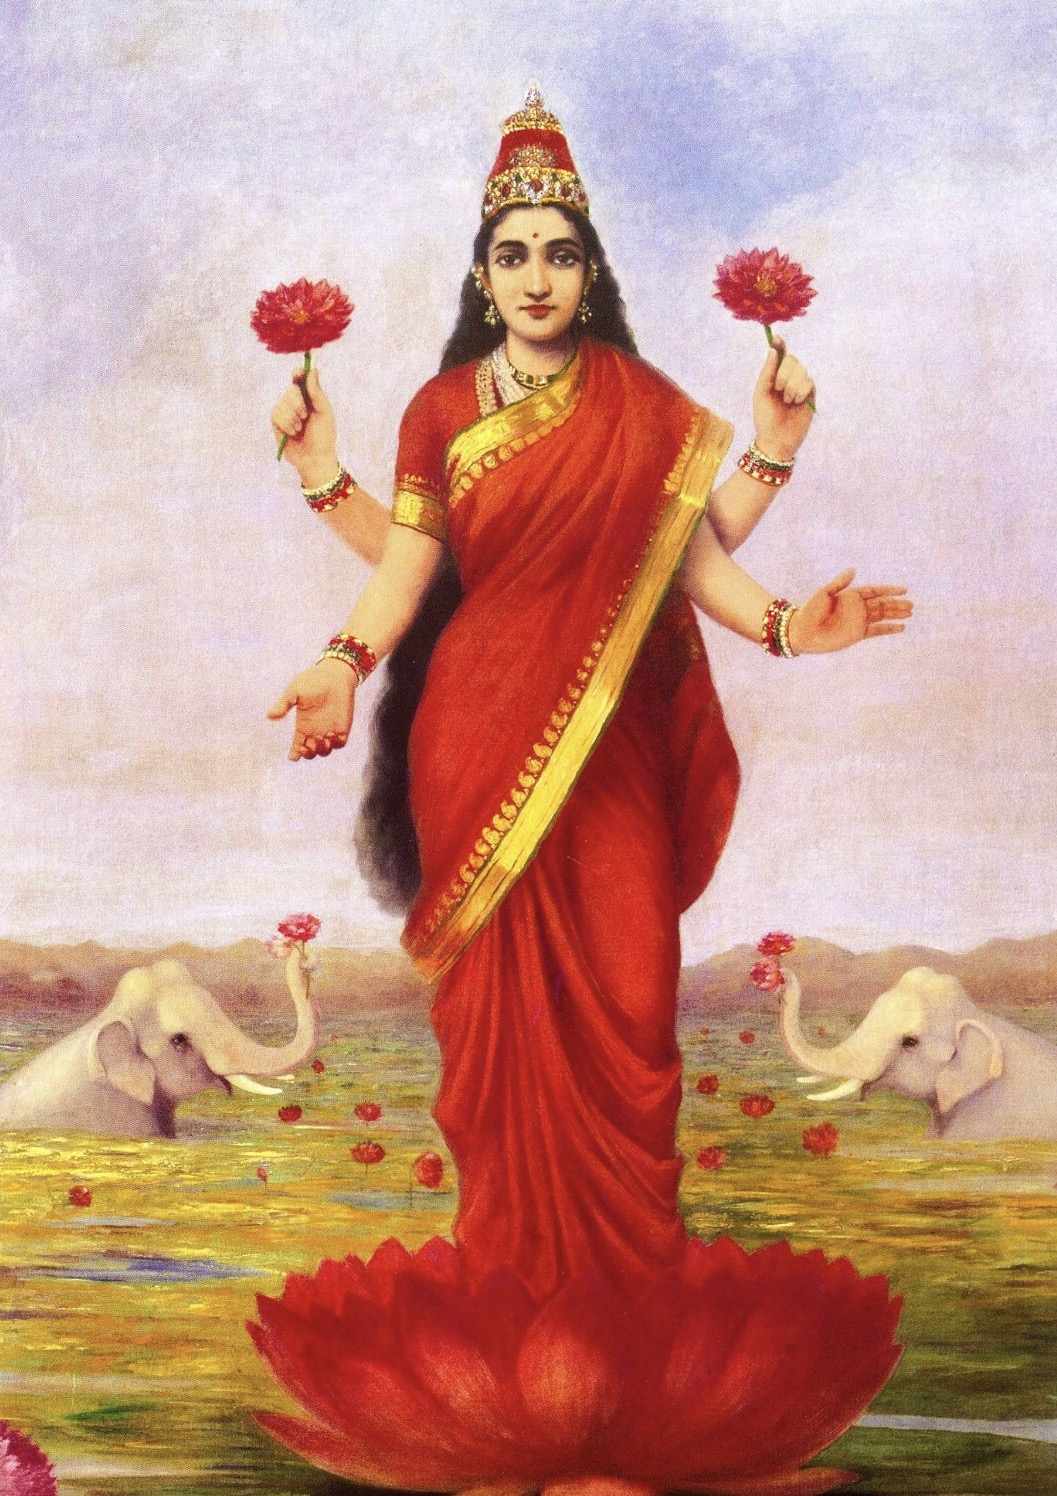 Treasure 02 - Lakshmi or Sri the Goddess of Fortune